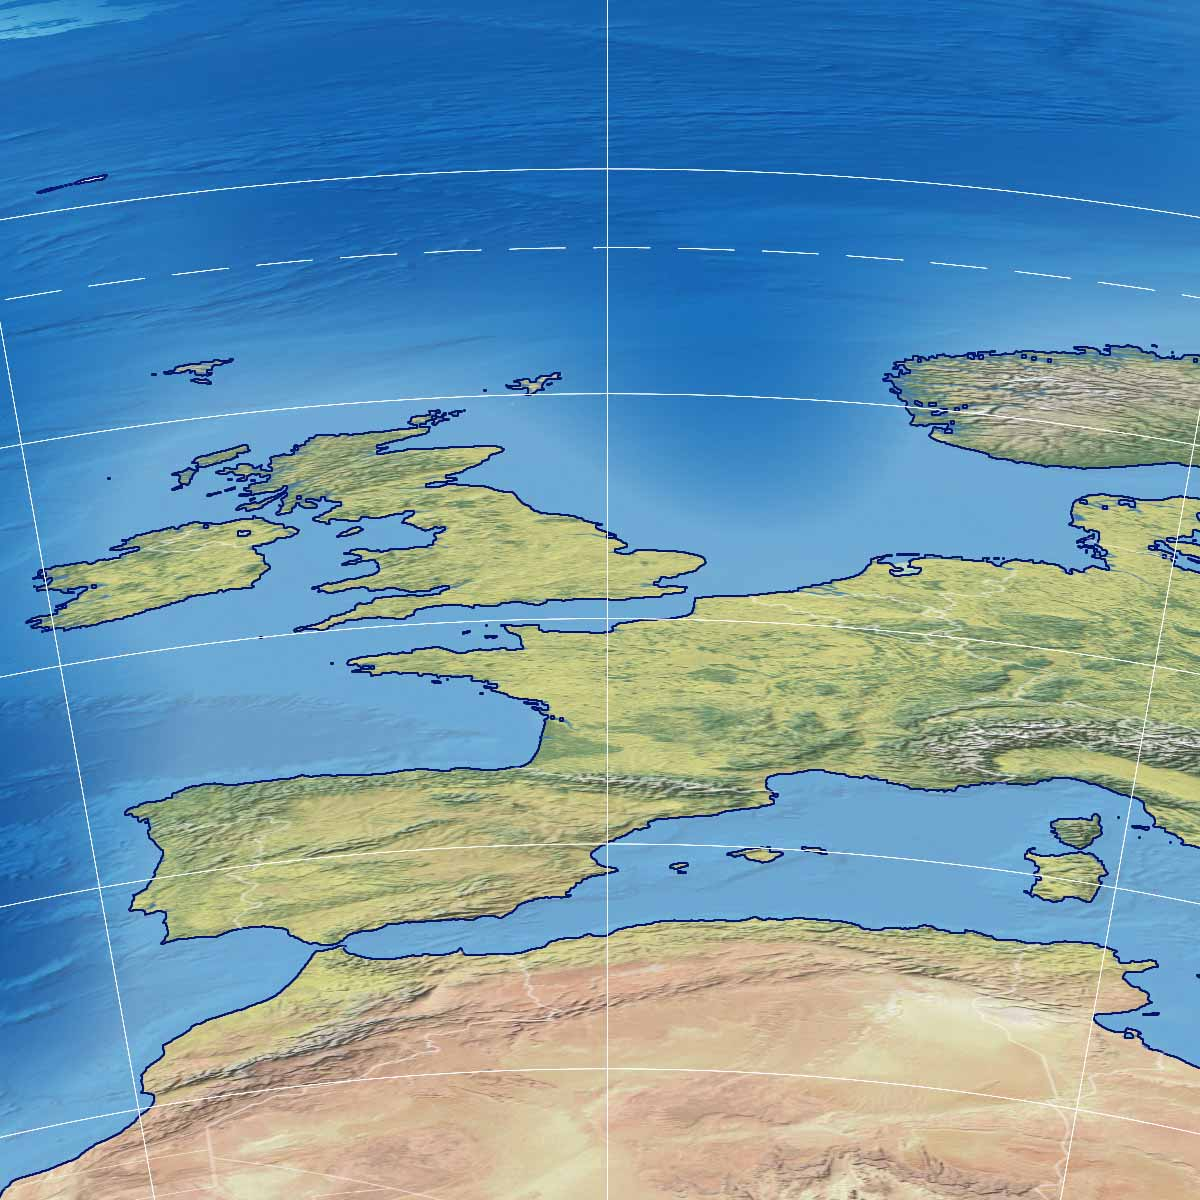 Part of the world map according to the penguin projection showing a rather distorted Europe